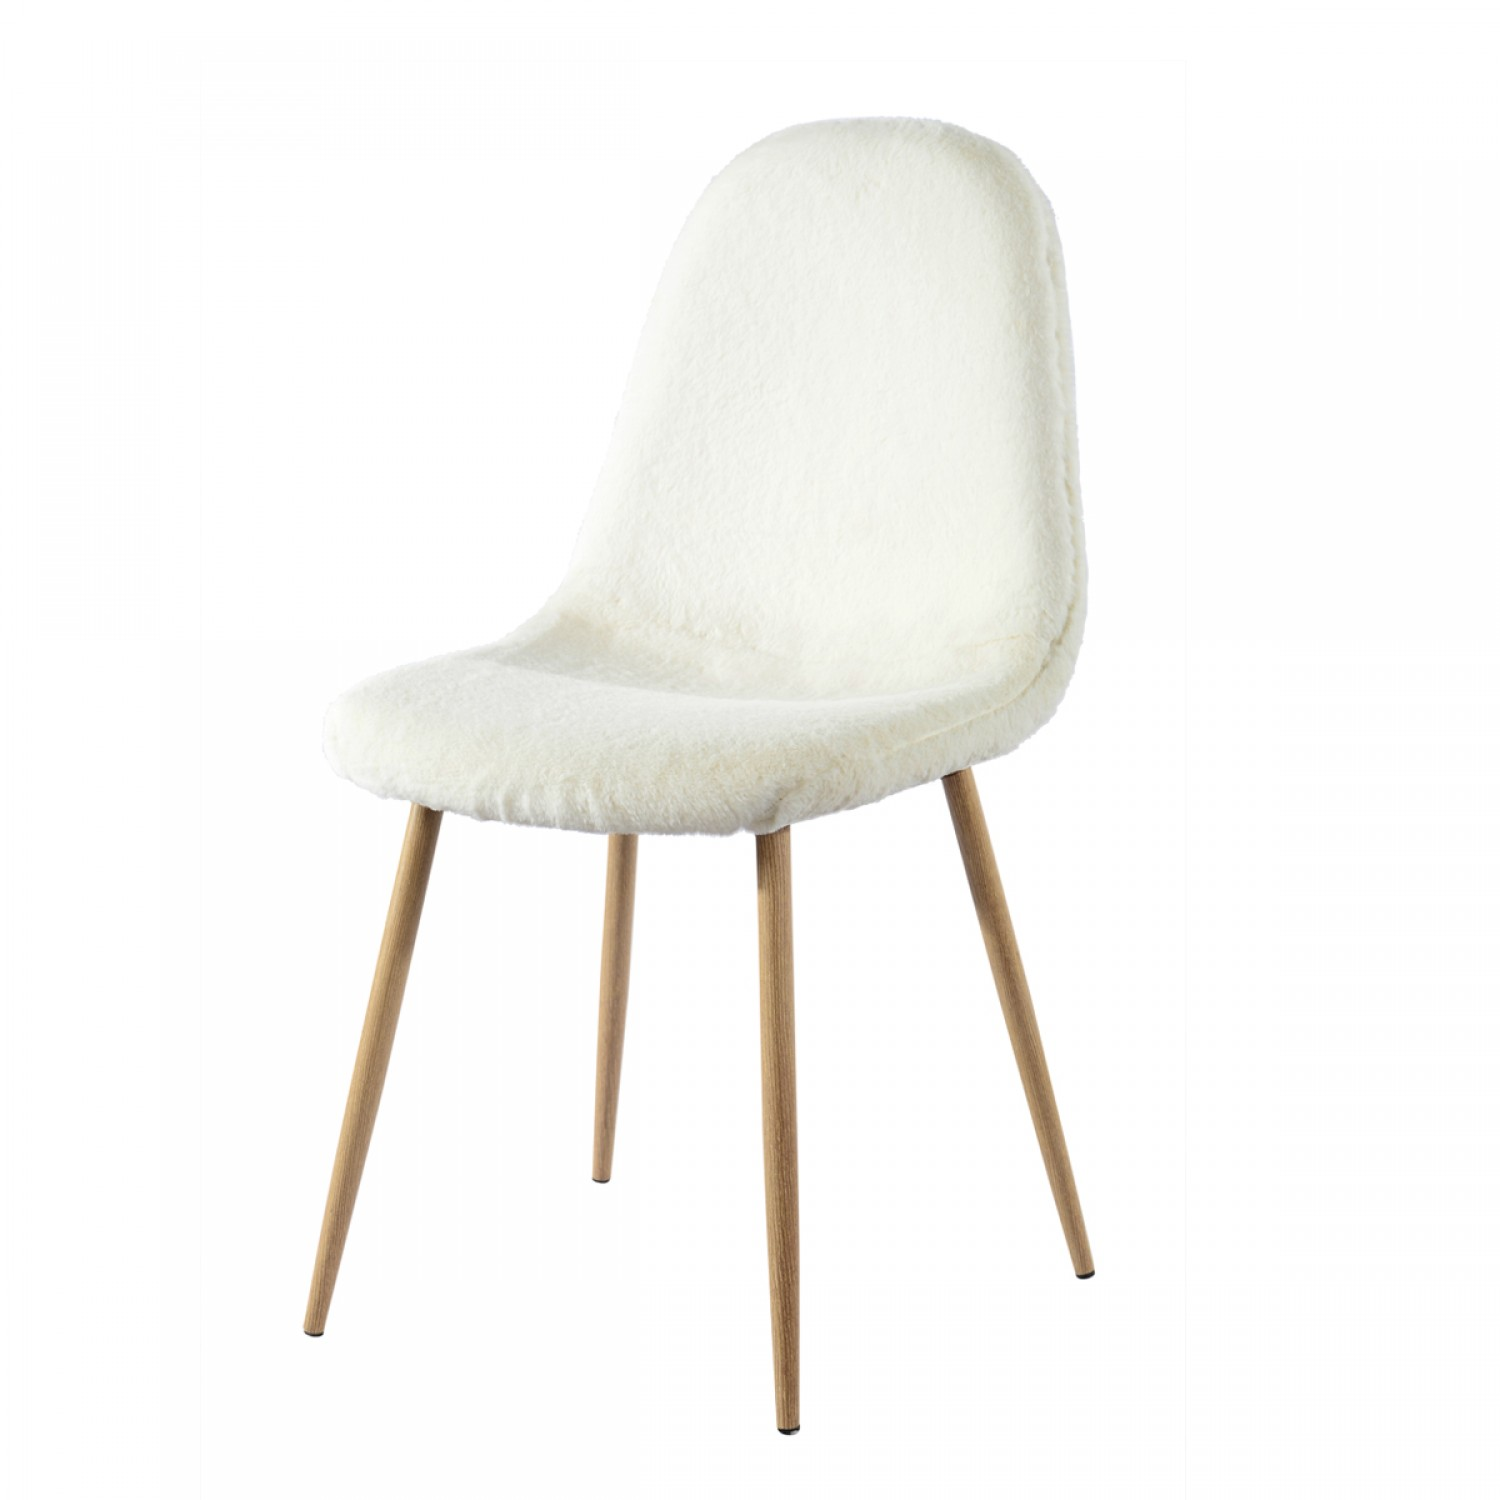 Chaise moumoute blanche lot de 2 koya design for Chaise cuisine blanche